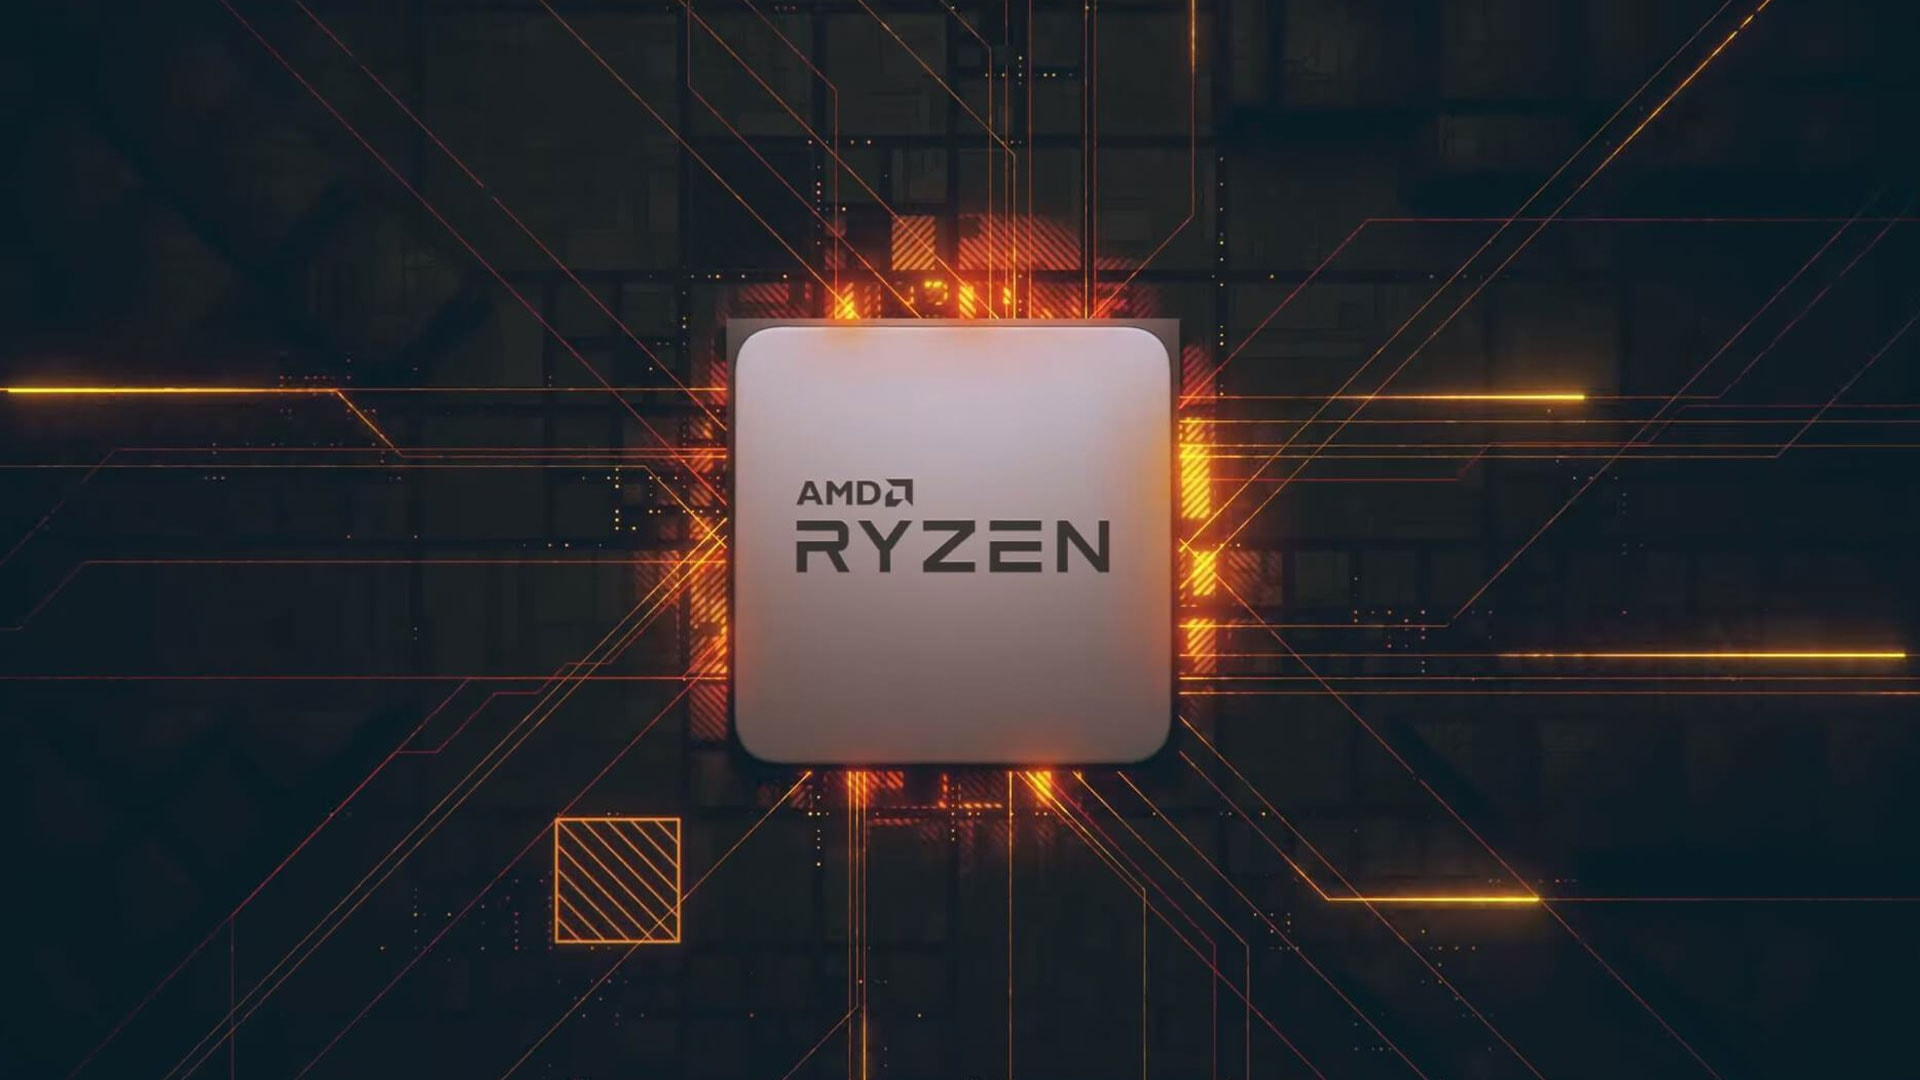 Amd Ryzen 7 3800x Cpu Review Cgmagazine